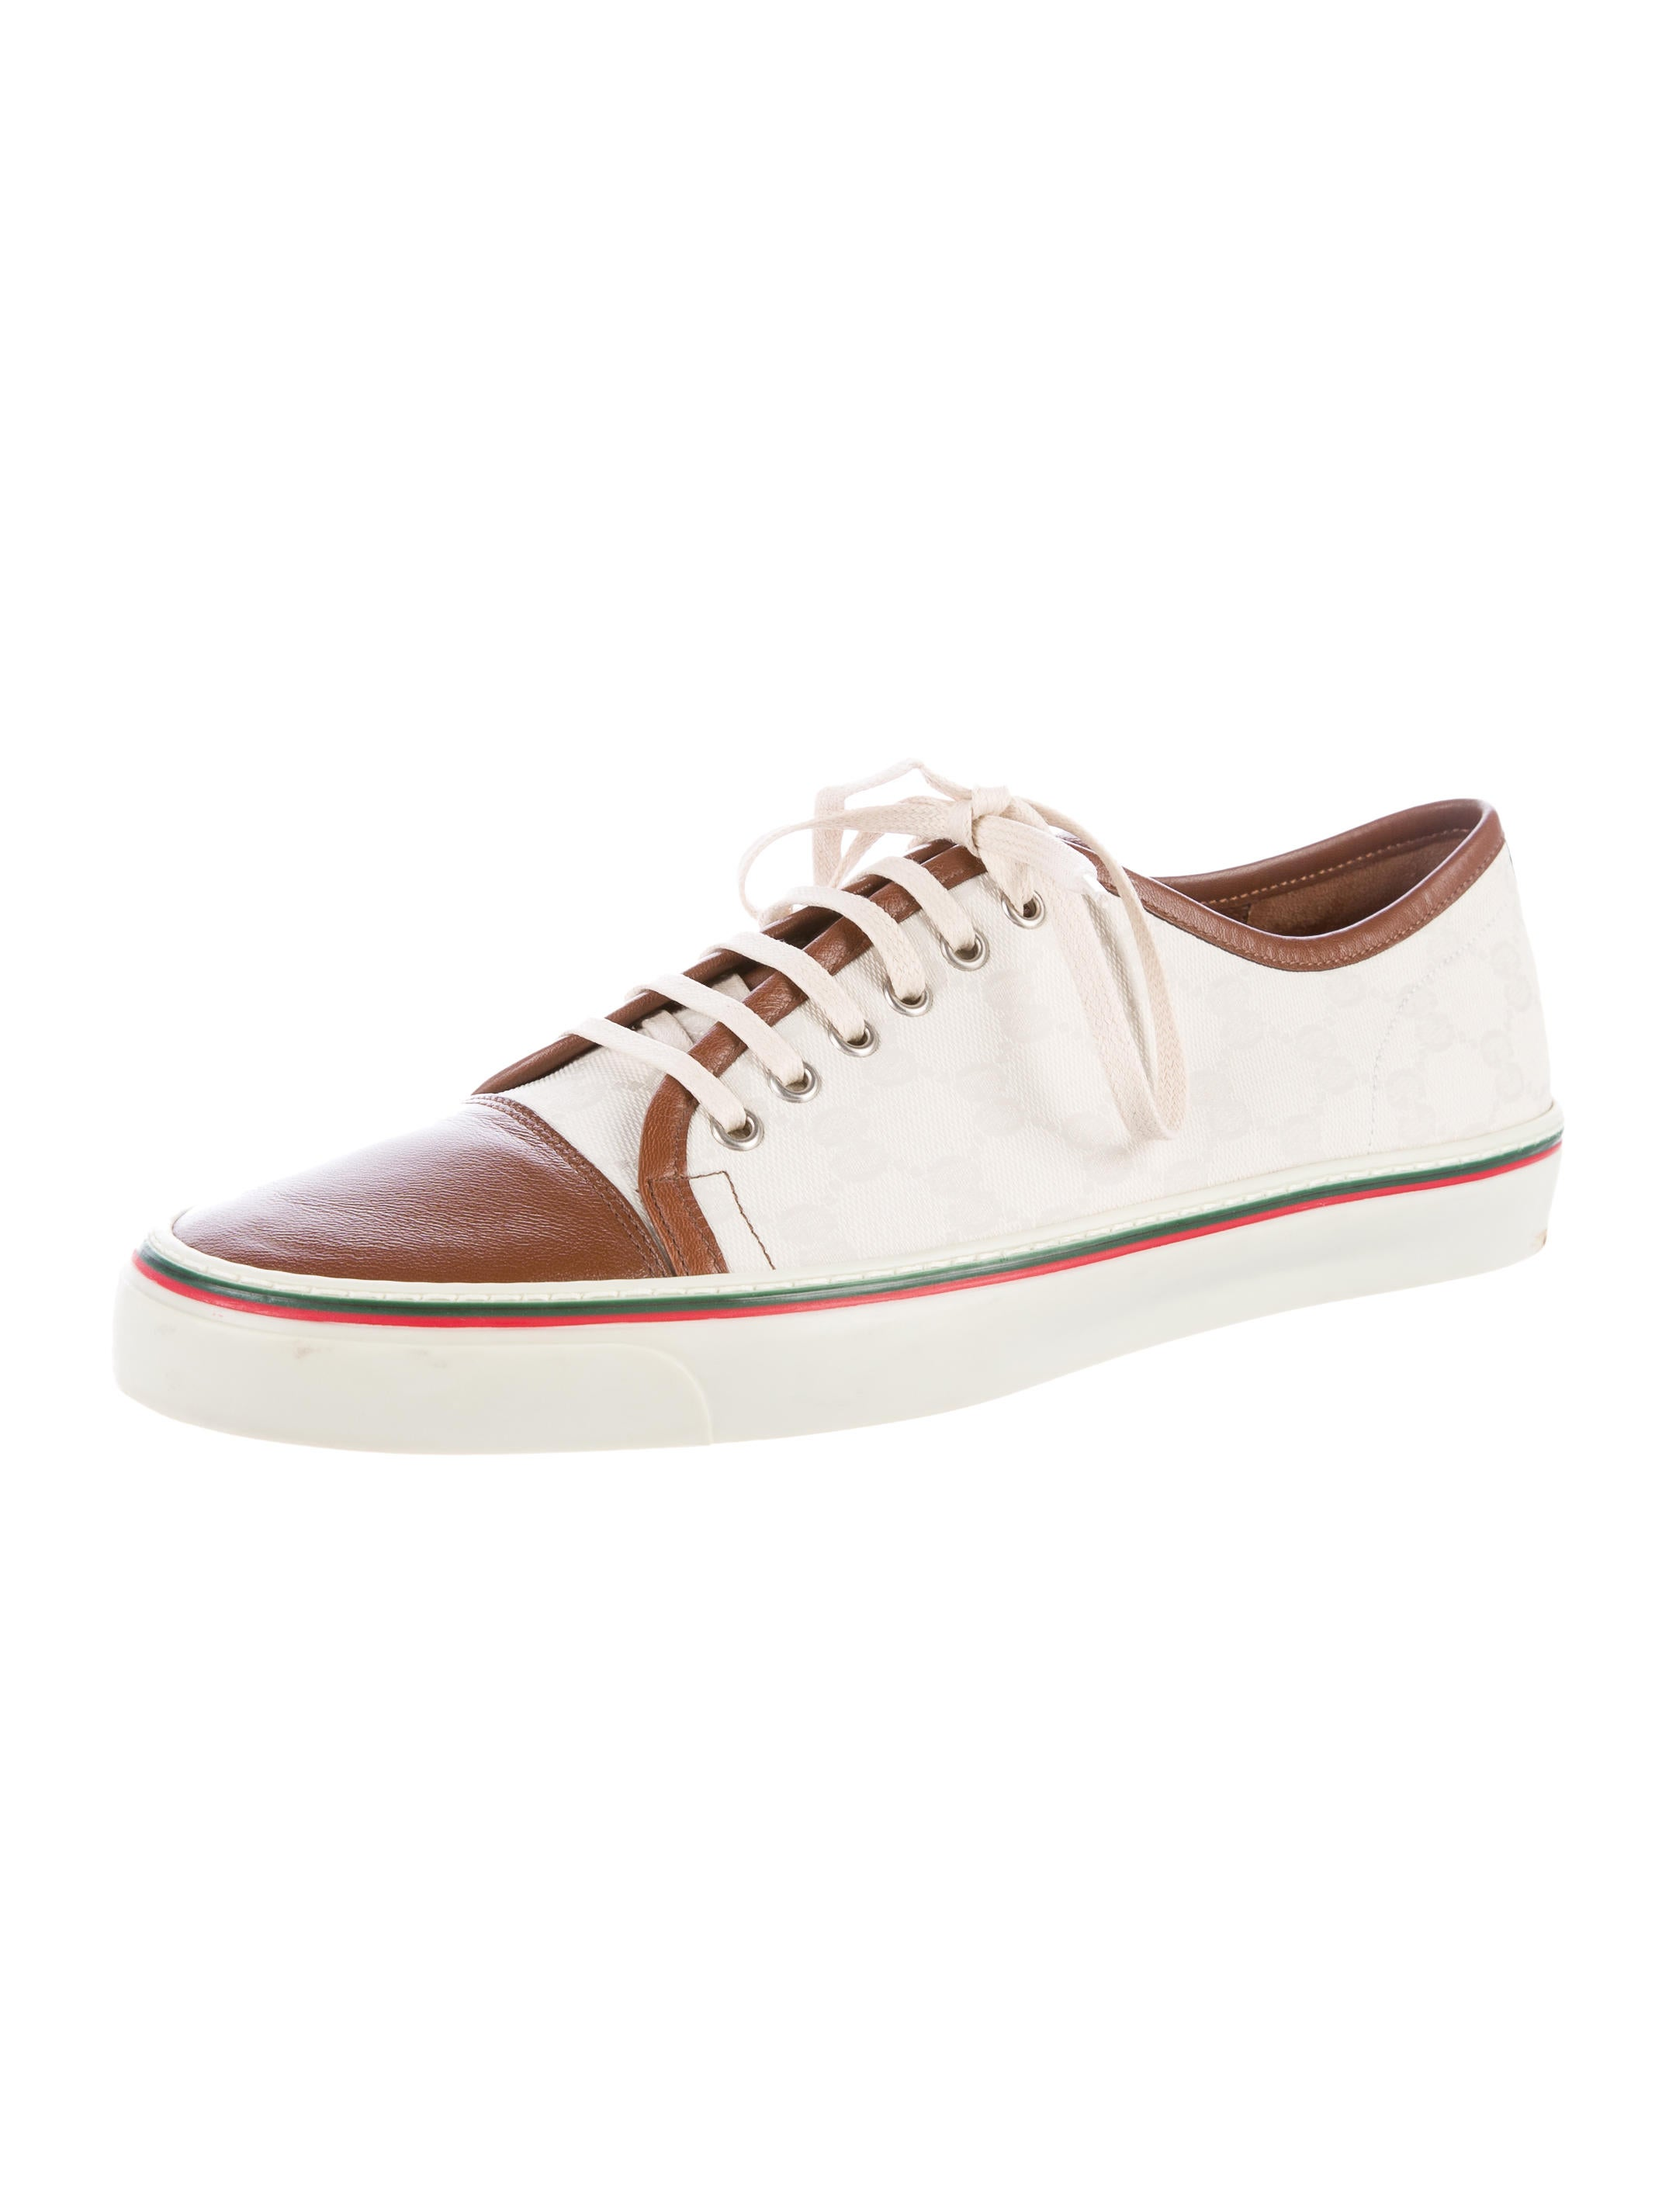 gucci leather trimmed gg canvas sneakers w tags shoes